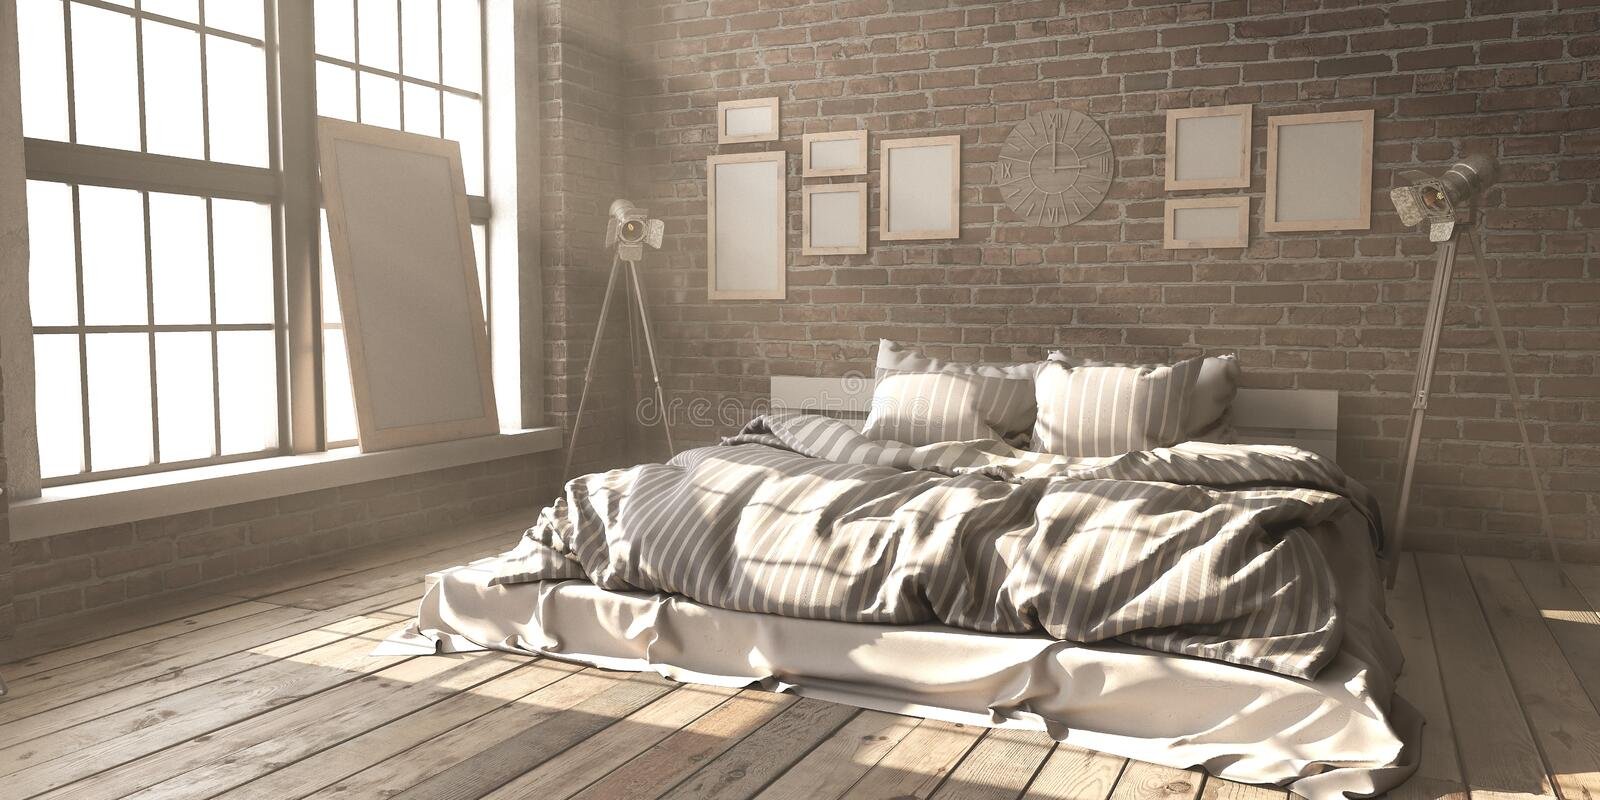 Minimalistik bedroom layout in loft style in the rays of sunligh stock photos